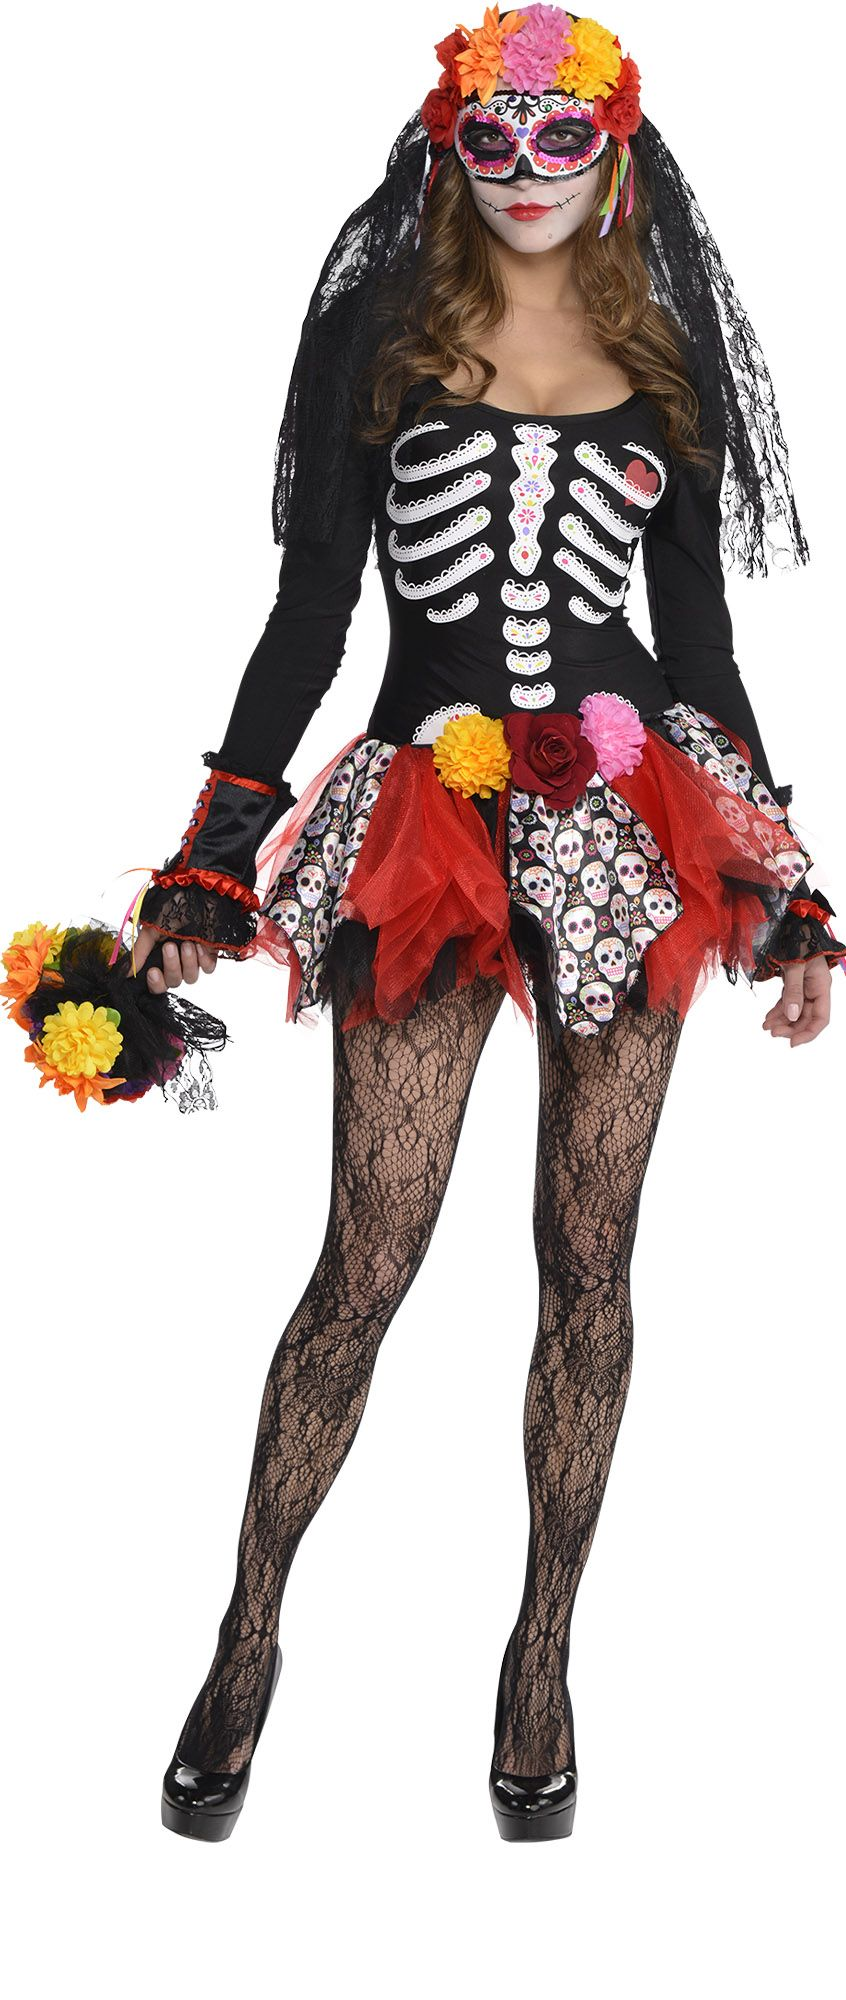 Create Your Own Women\'s Sugar Skull Costume Accessories - Party City